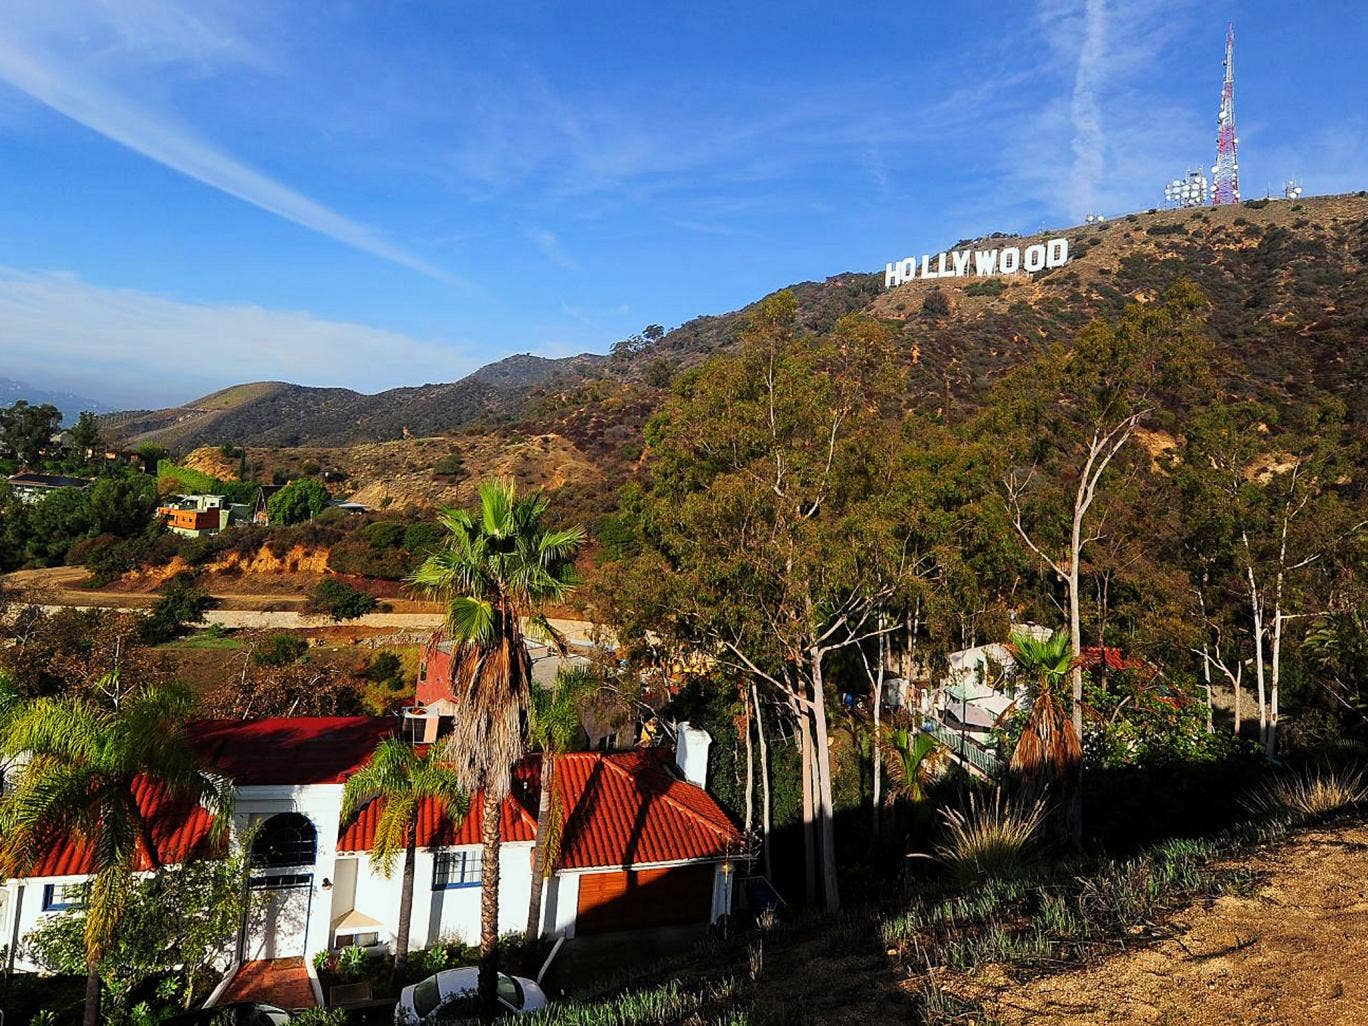 Sign up: the Hollywood Hills were a road-trip highlight